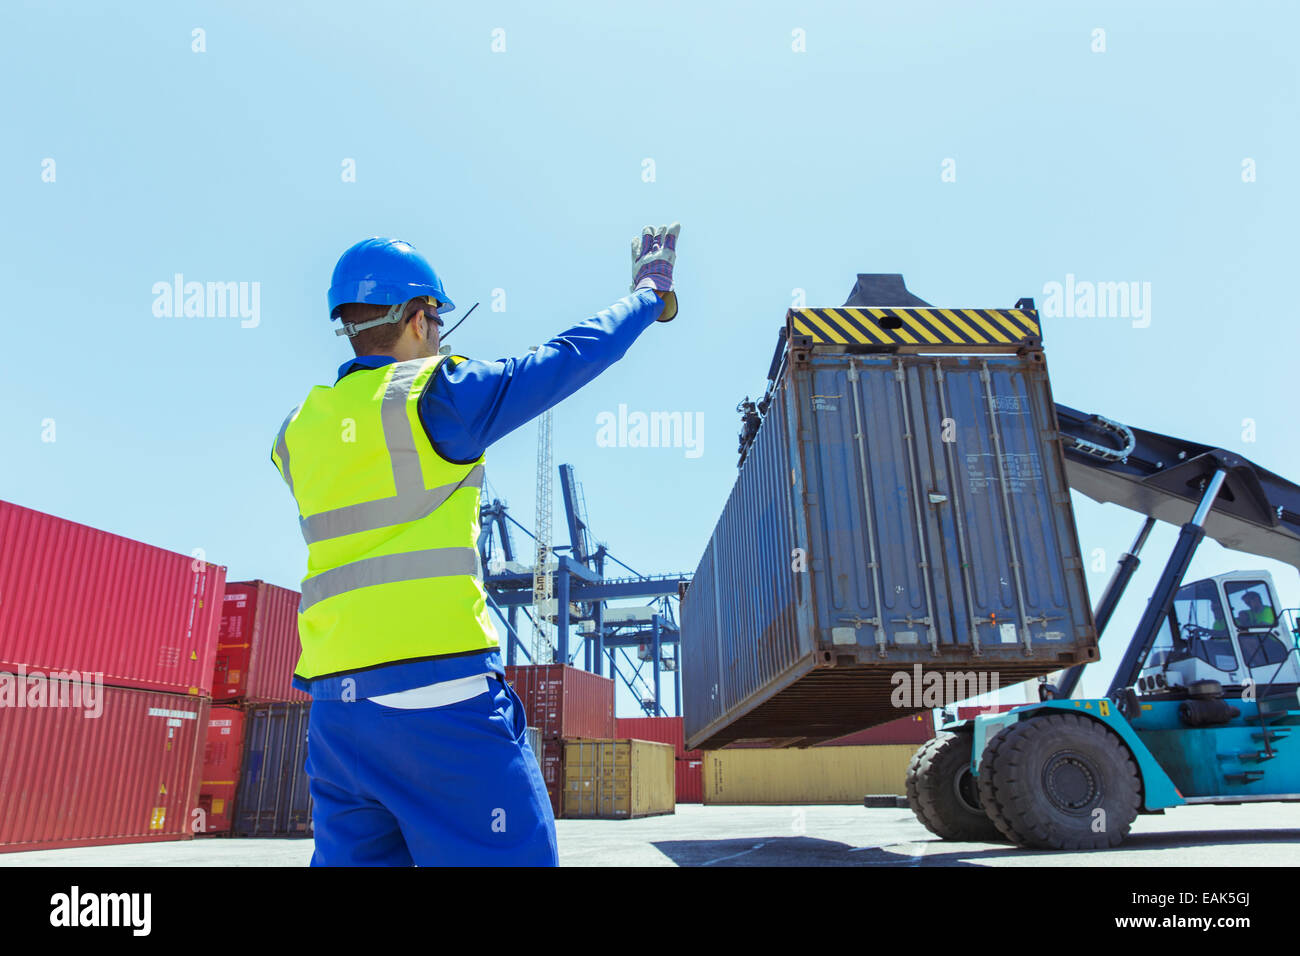 Worker directing crane carrying cargo container - Stock Image